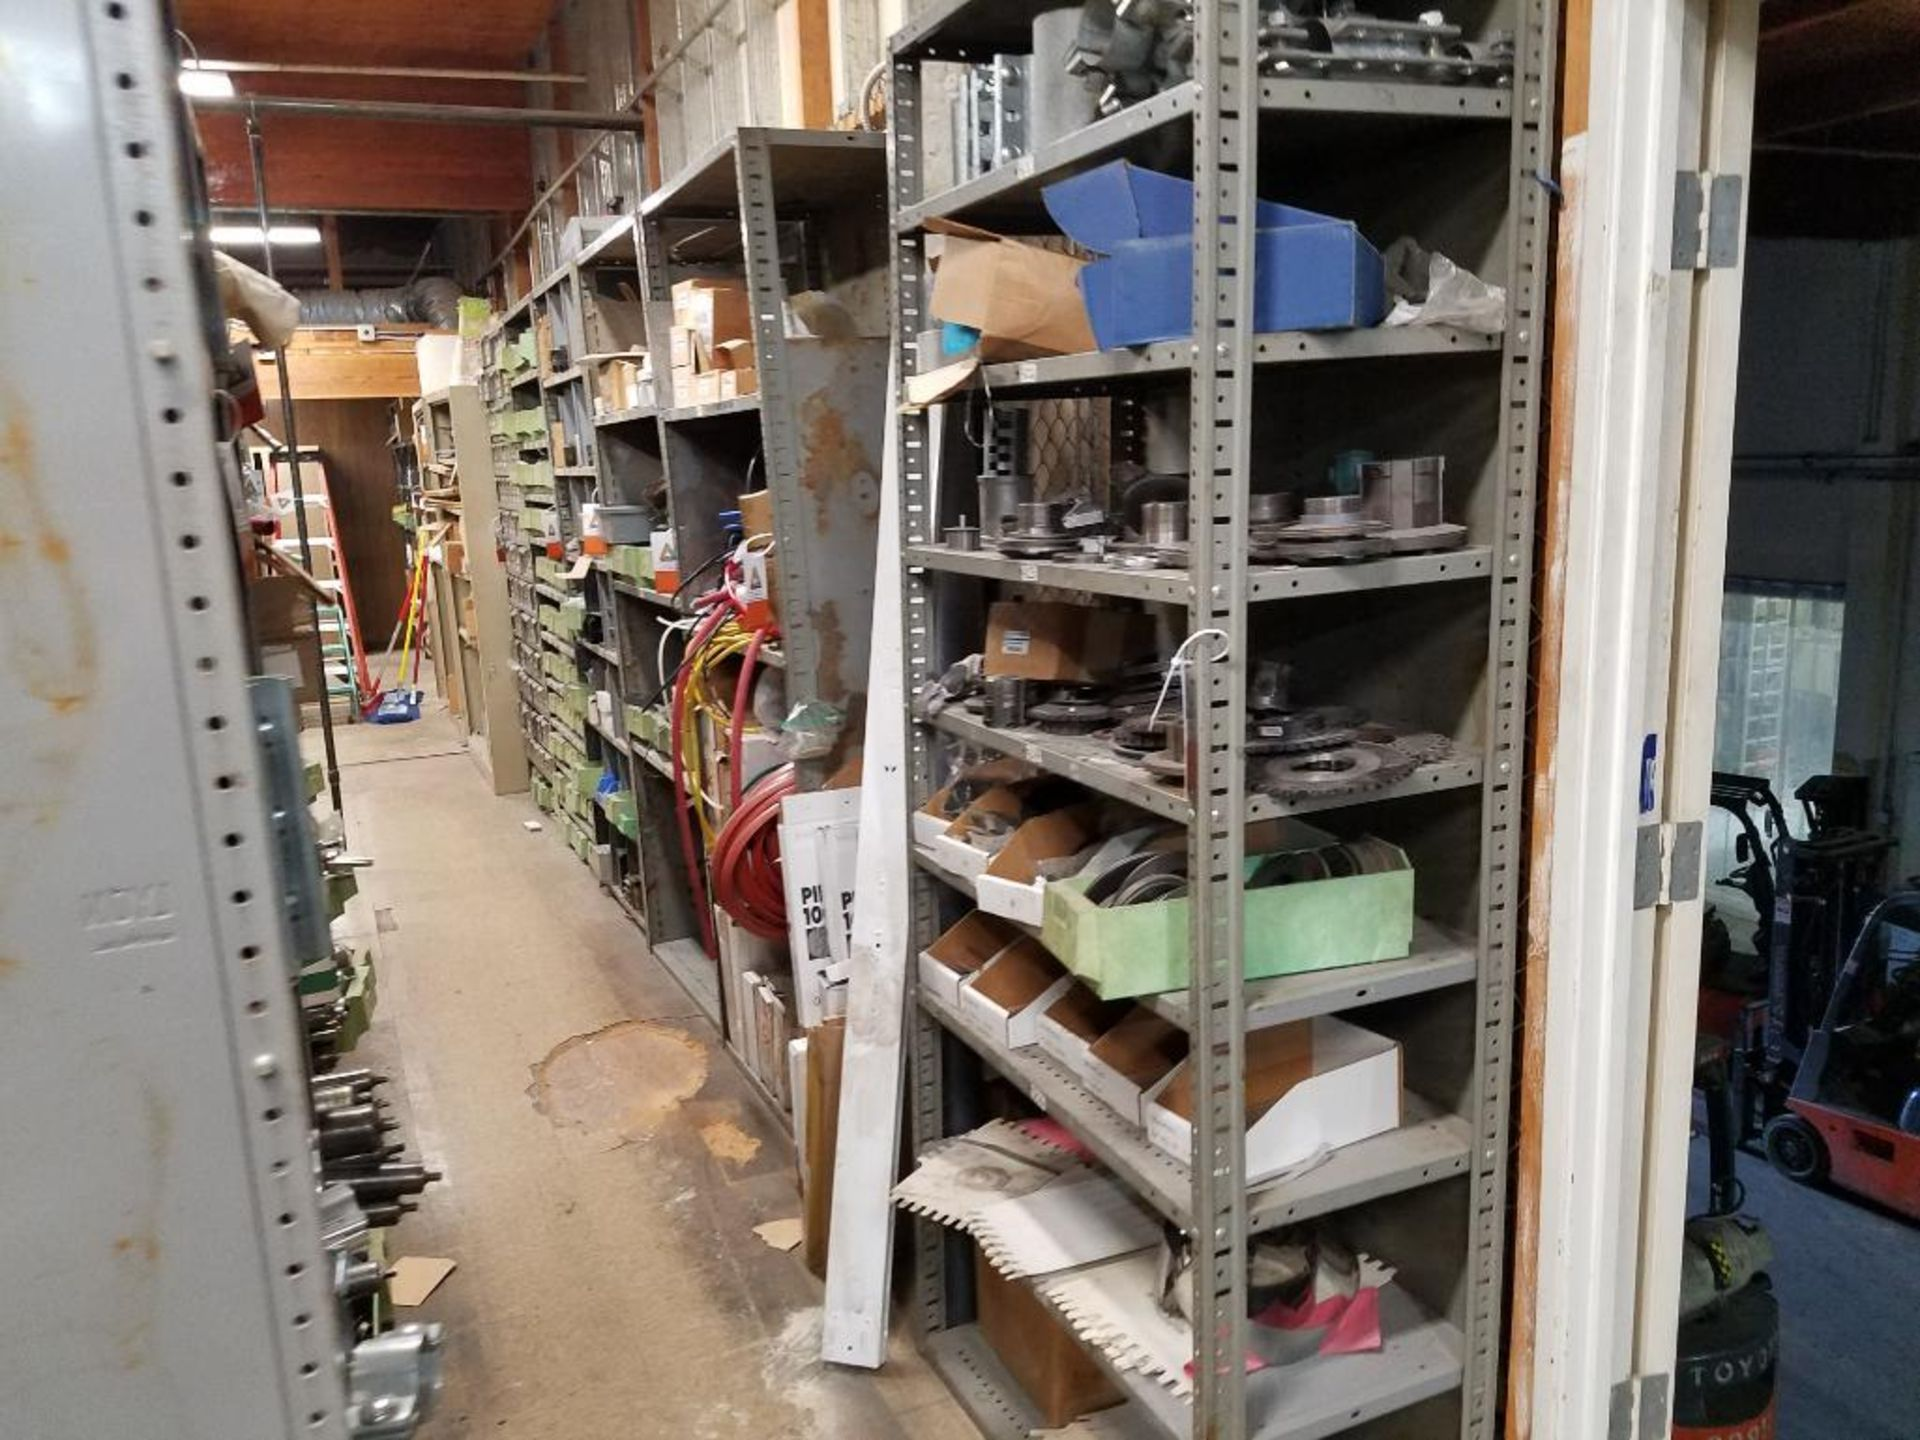 all shelving and storage units located in MRO room - Image 9 of 11